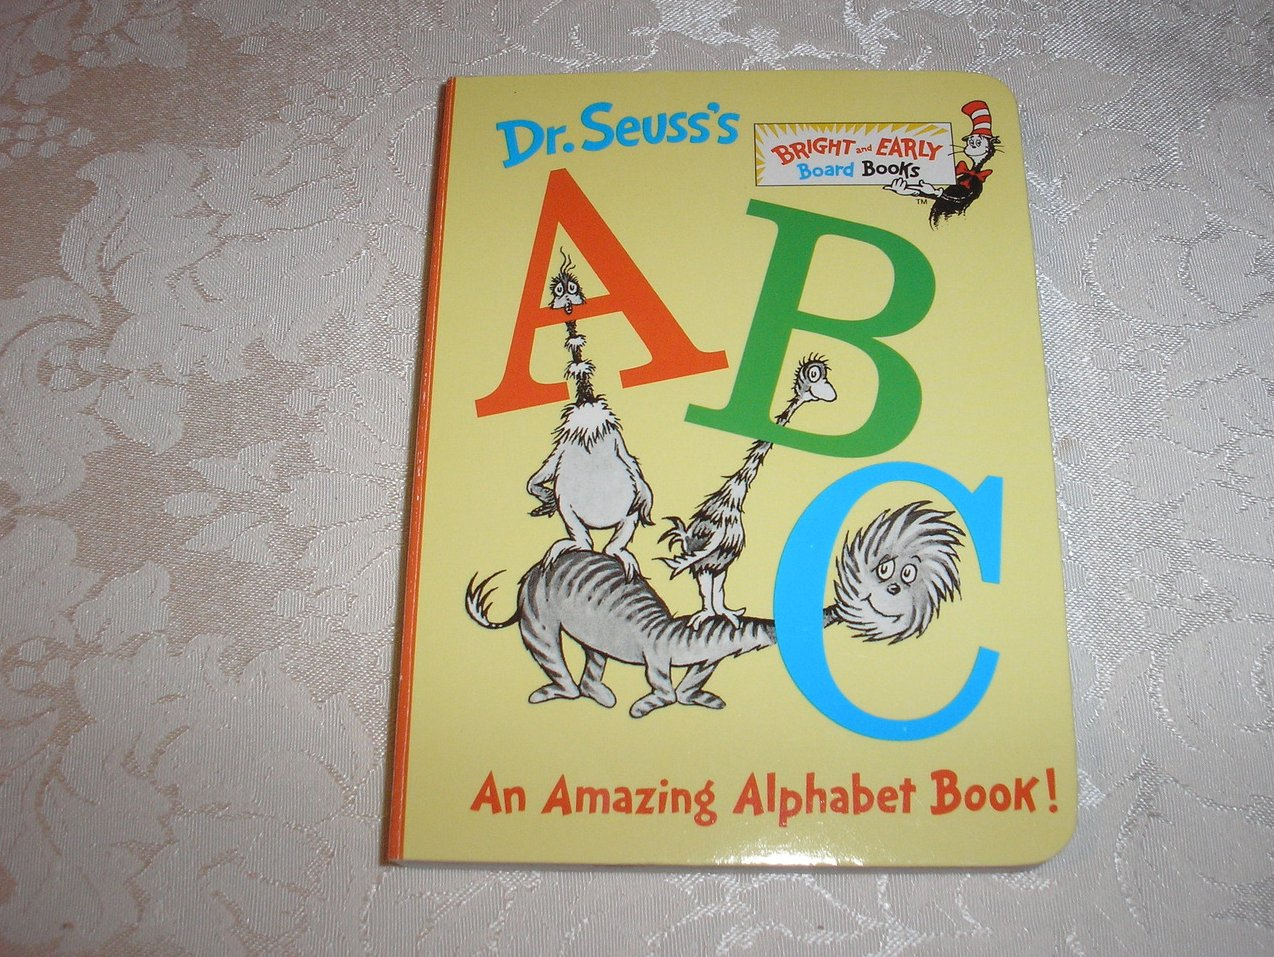 Dr. Seuss's ABC brand new board book